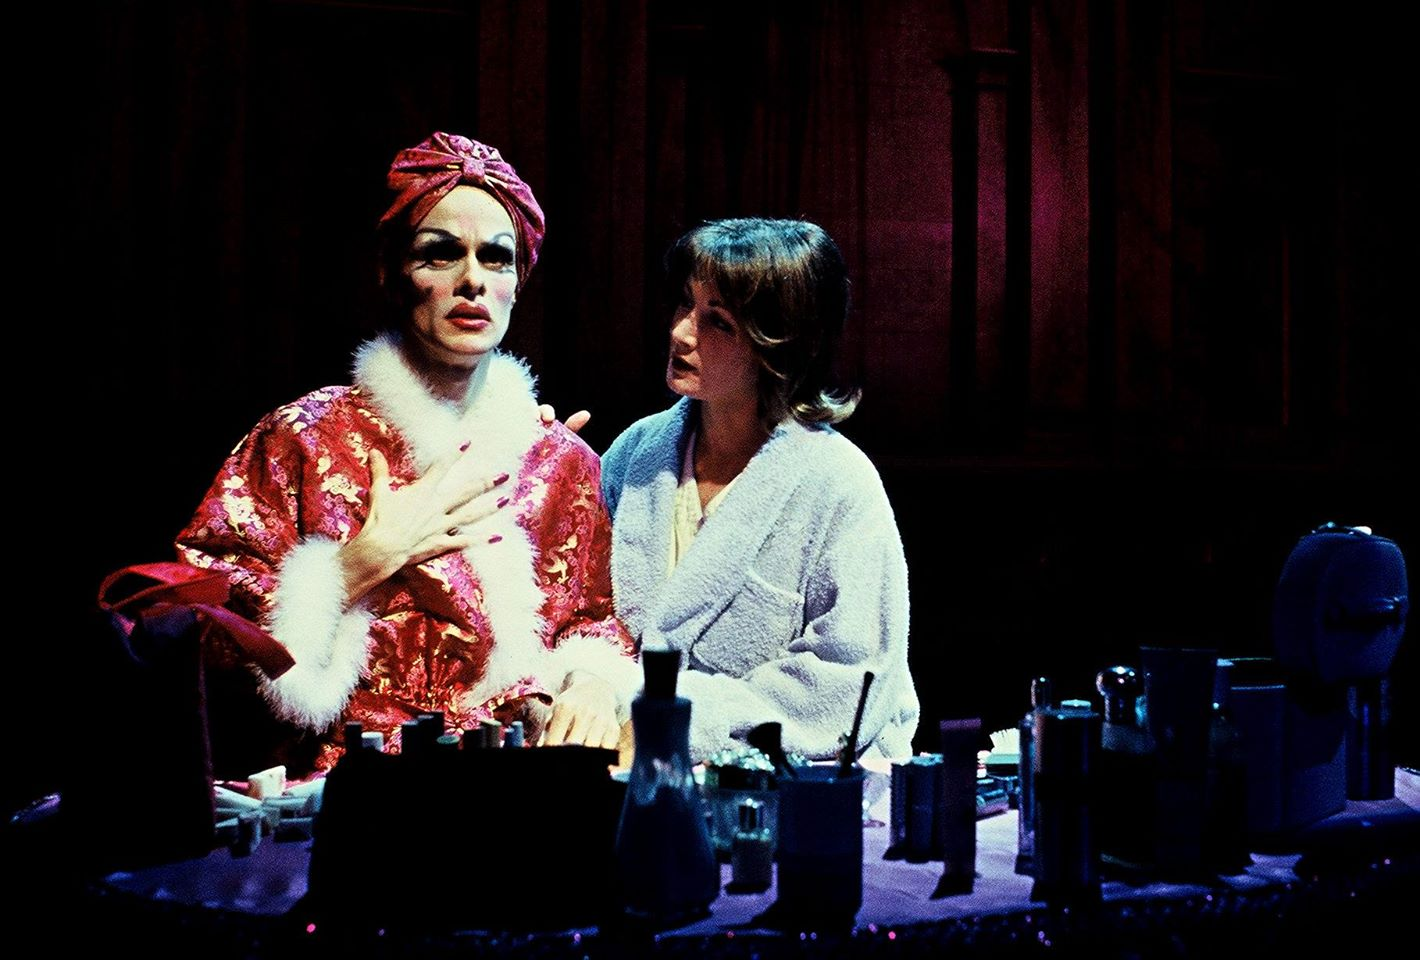 Actors Theatre. 2002. Angels in America - Millennium Approaches and Perestroika. Oliver Wadsworth, Natalie Inglish Nesbitt